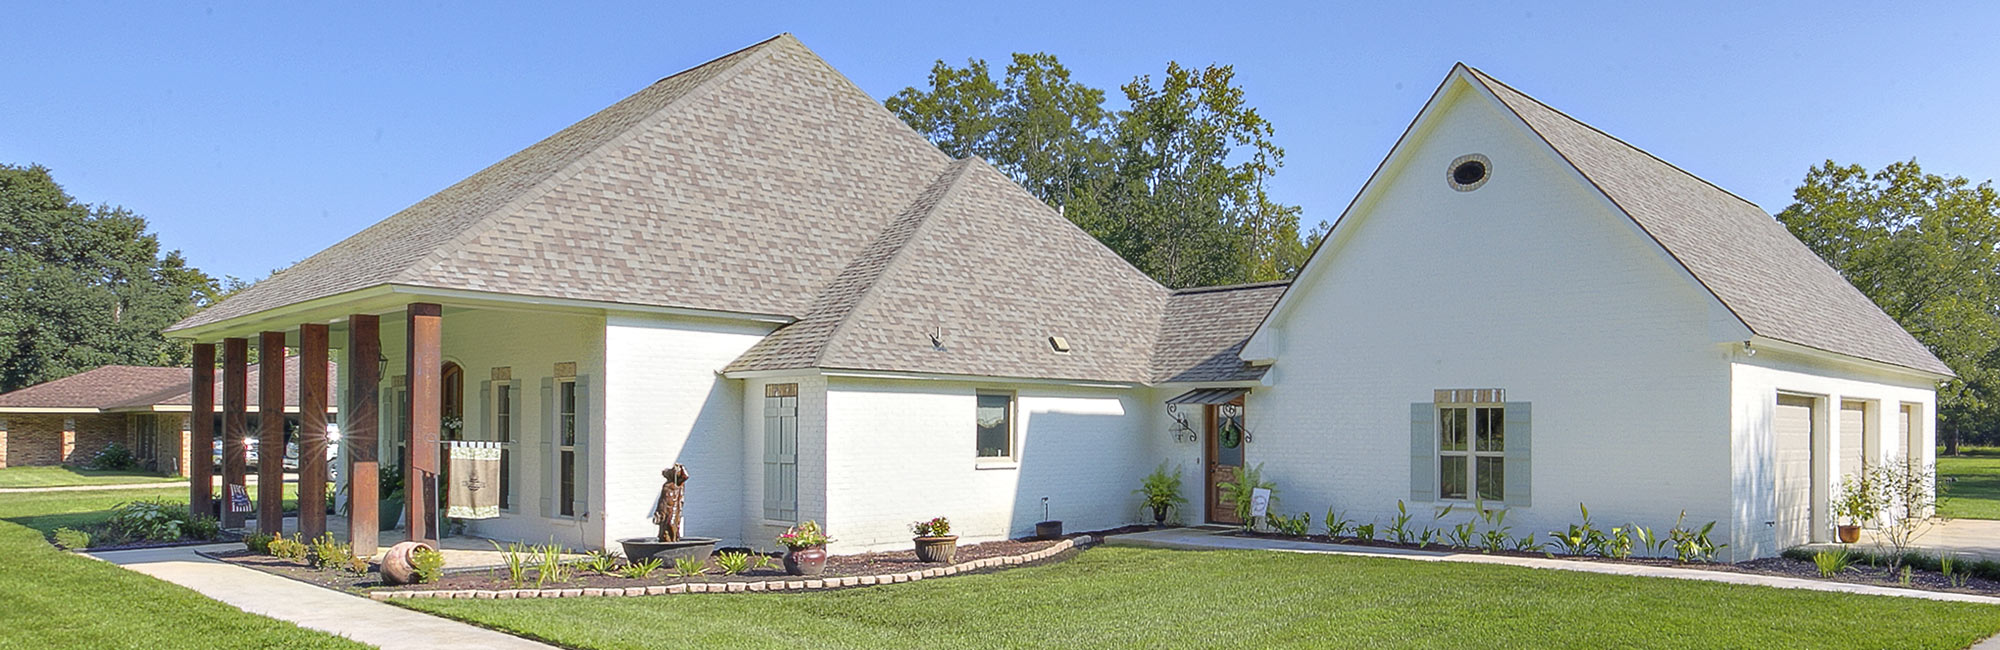 Custom Construction of a new home in Zachary, LA